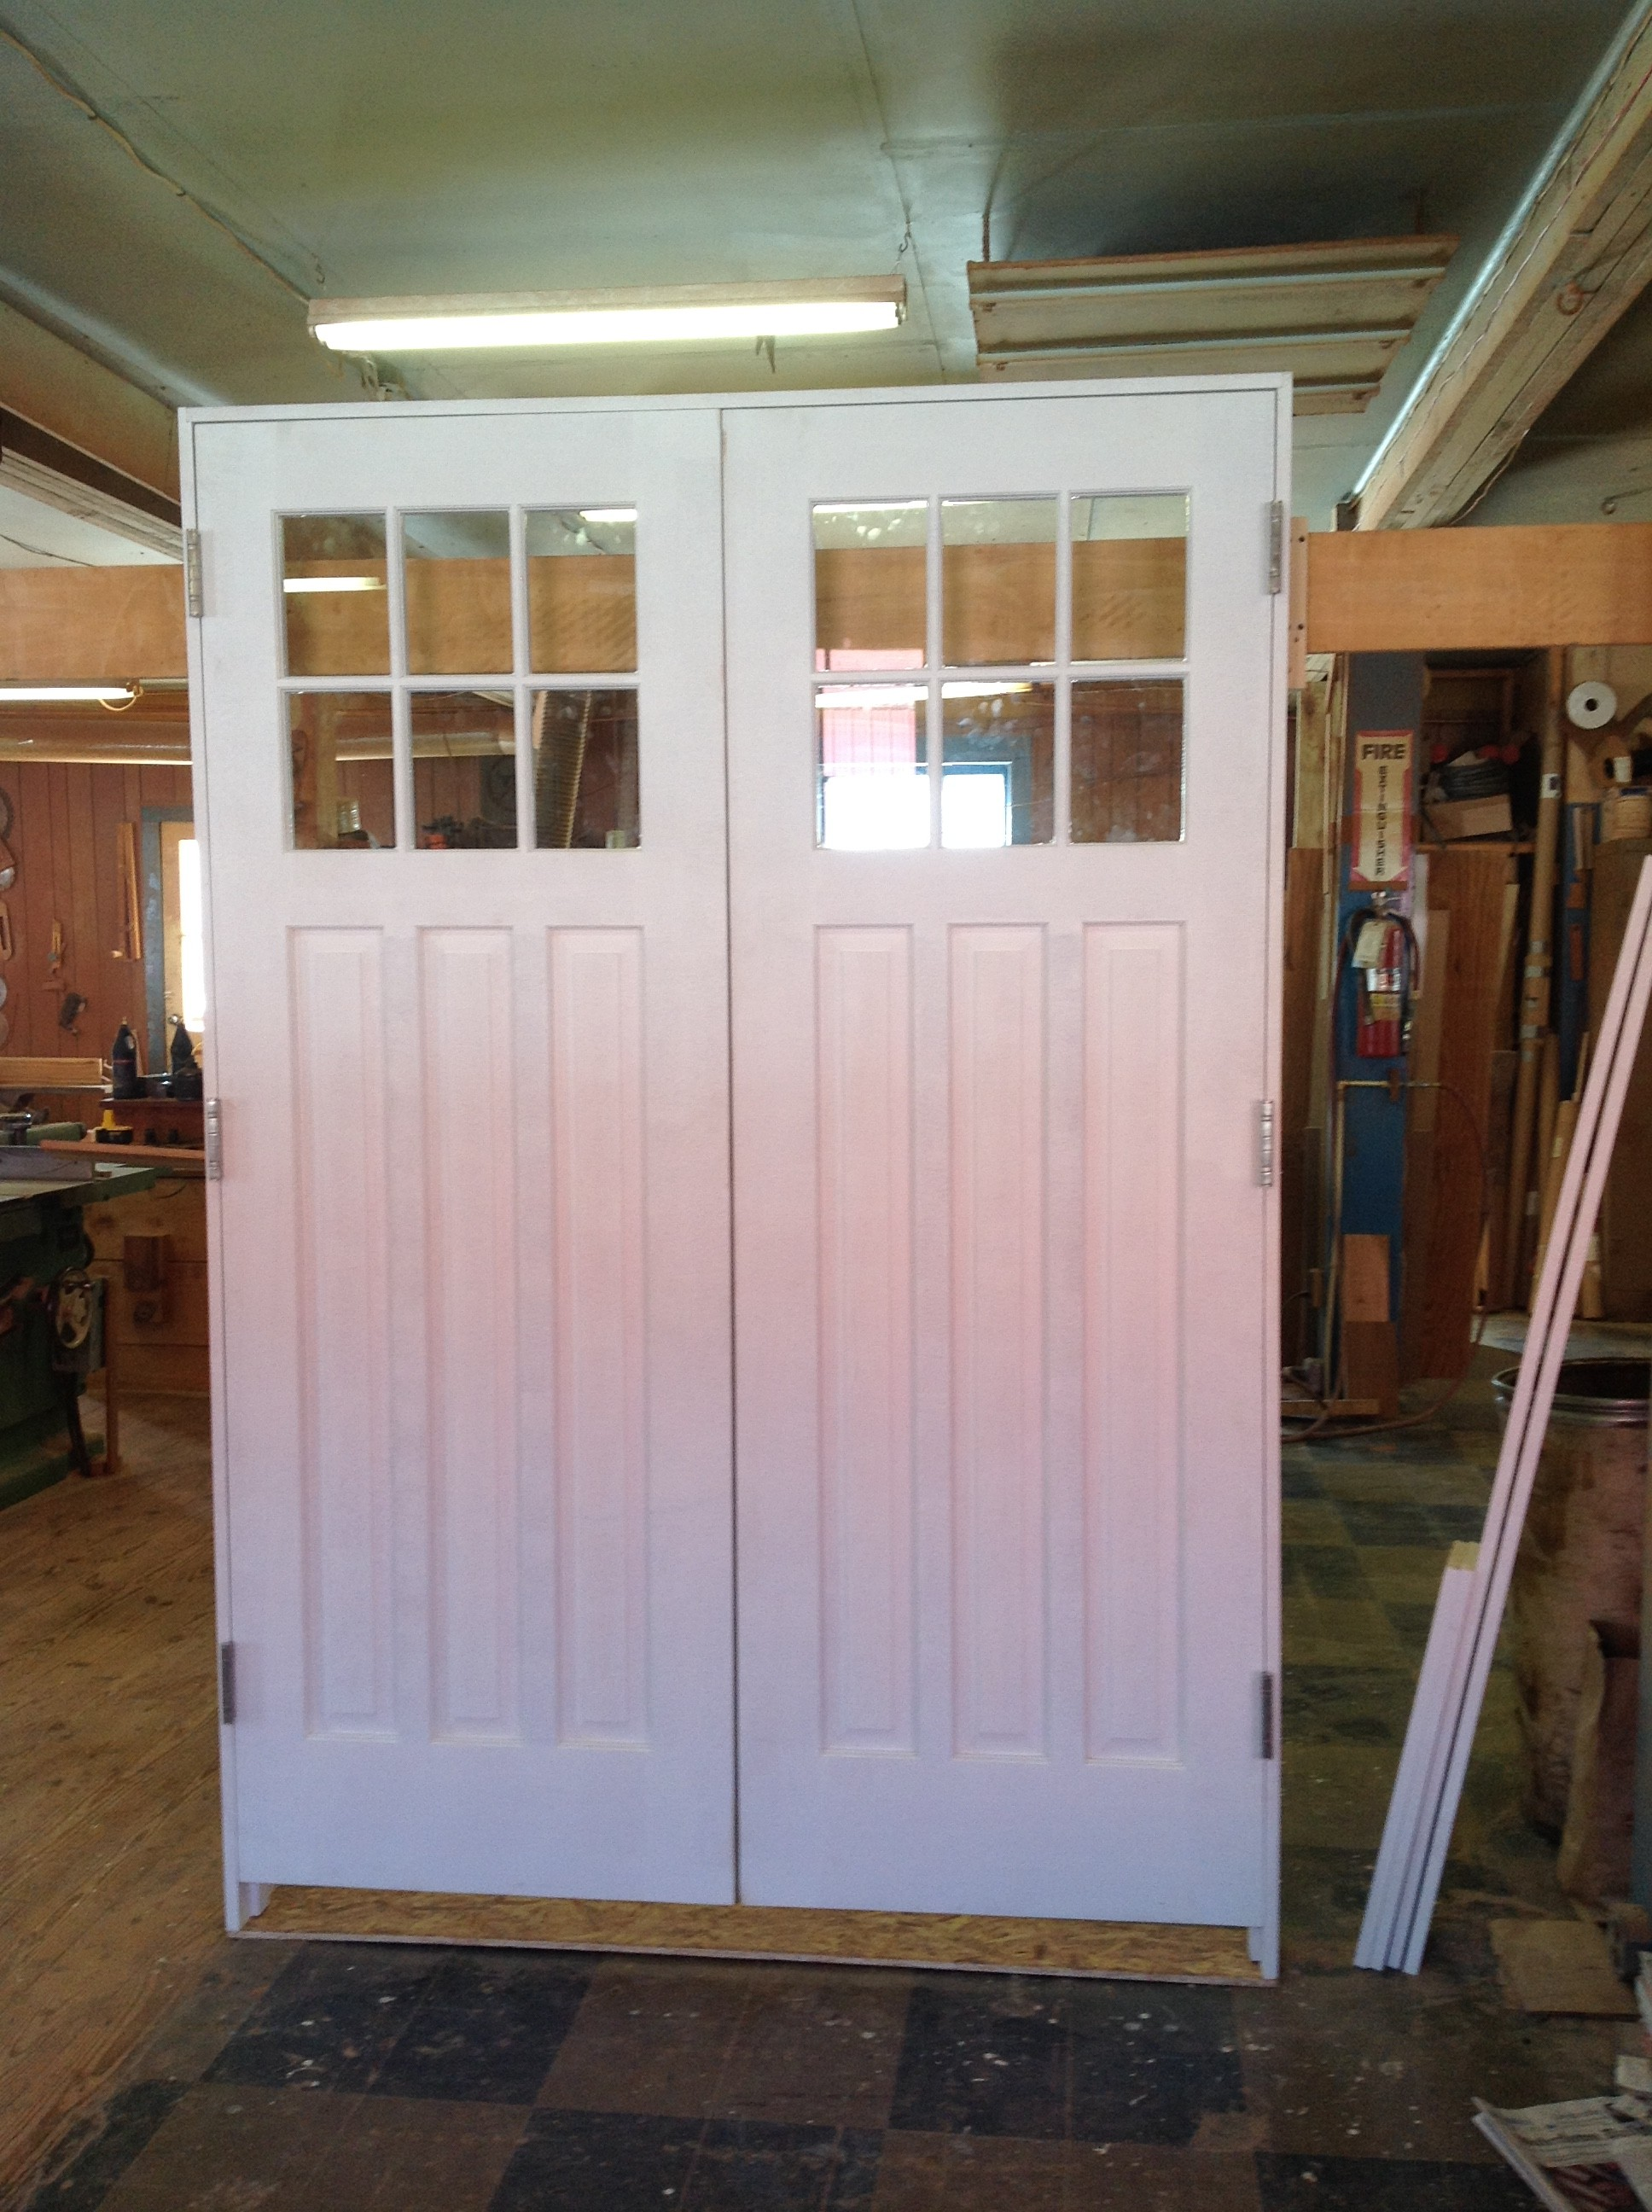 biz disappearing with superior door glass shade wood angeles panels themiracle los ca double ideas screen doors il view screens blinds shutters storm source